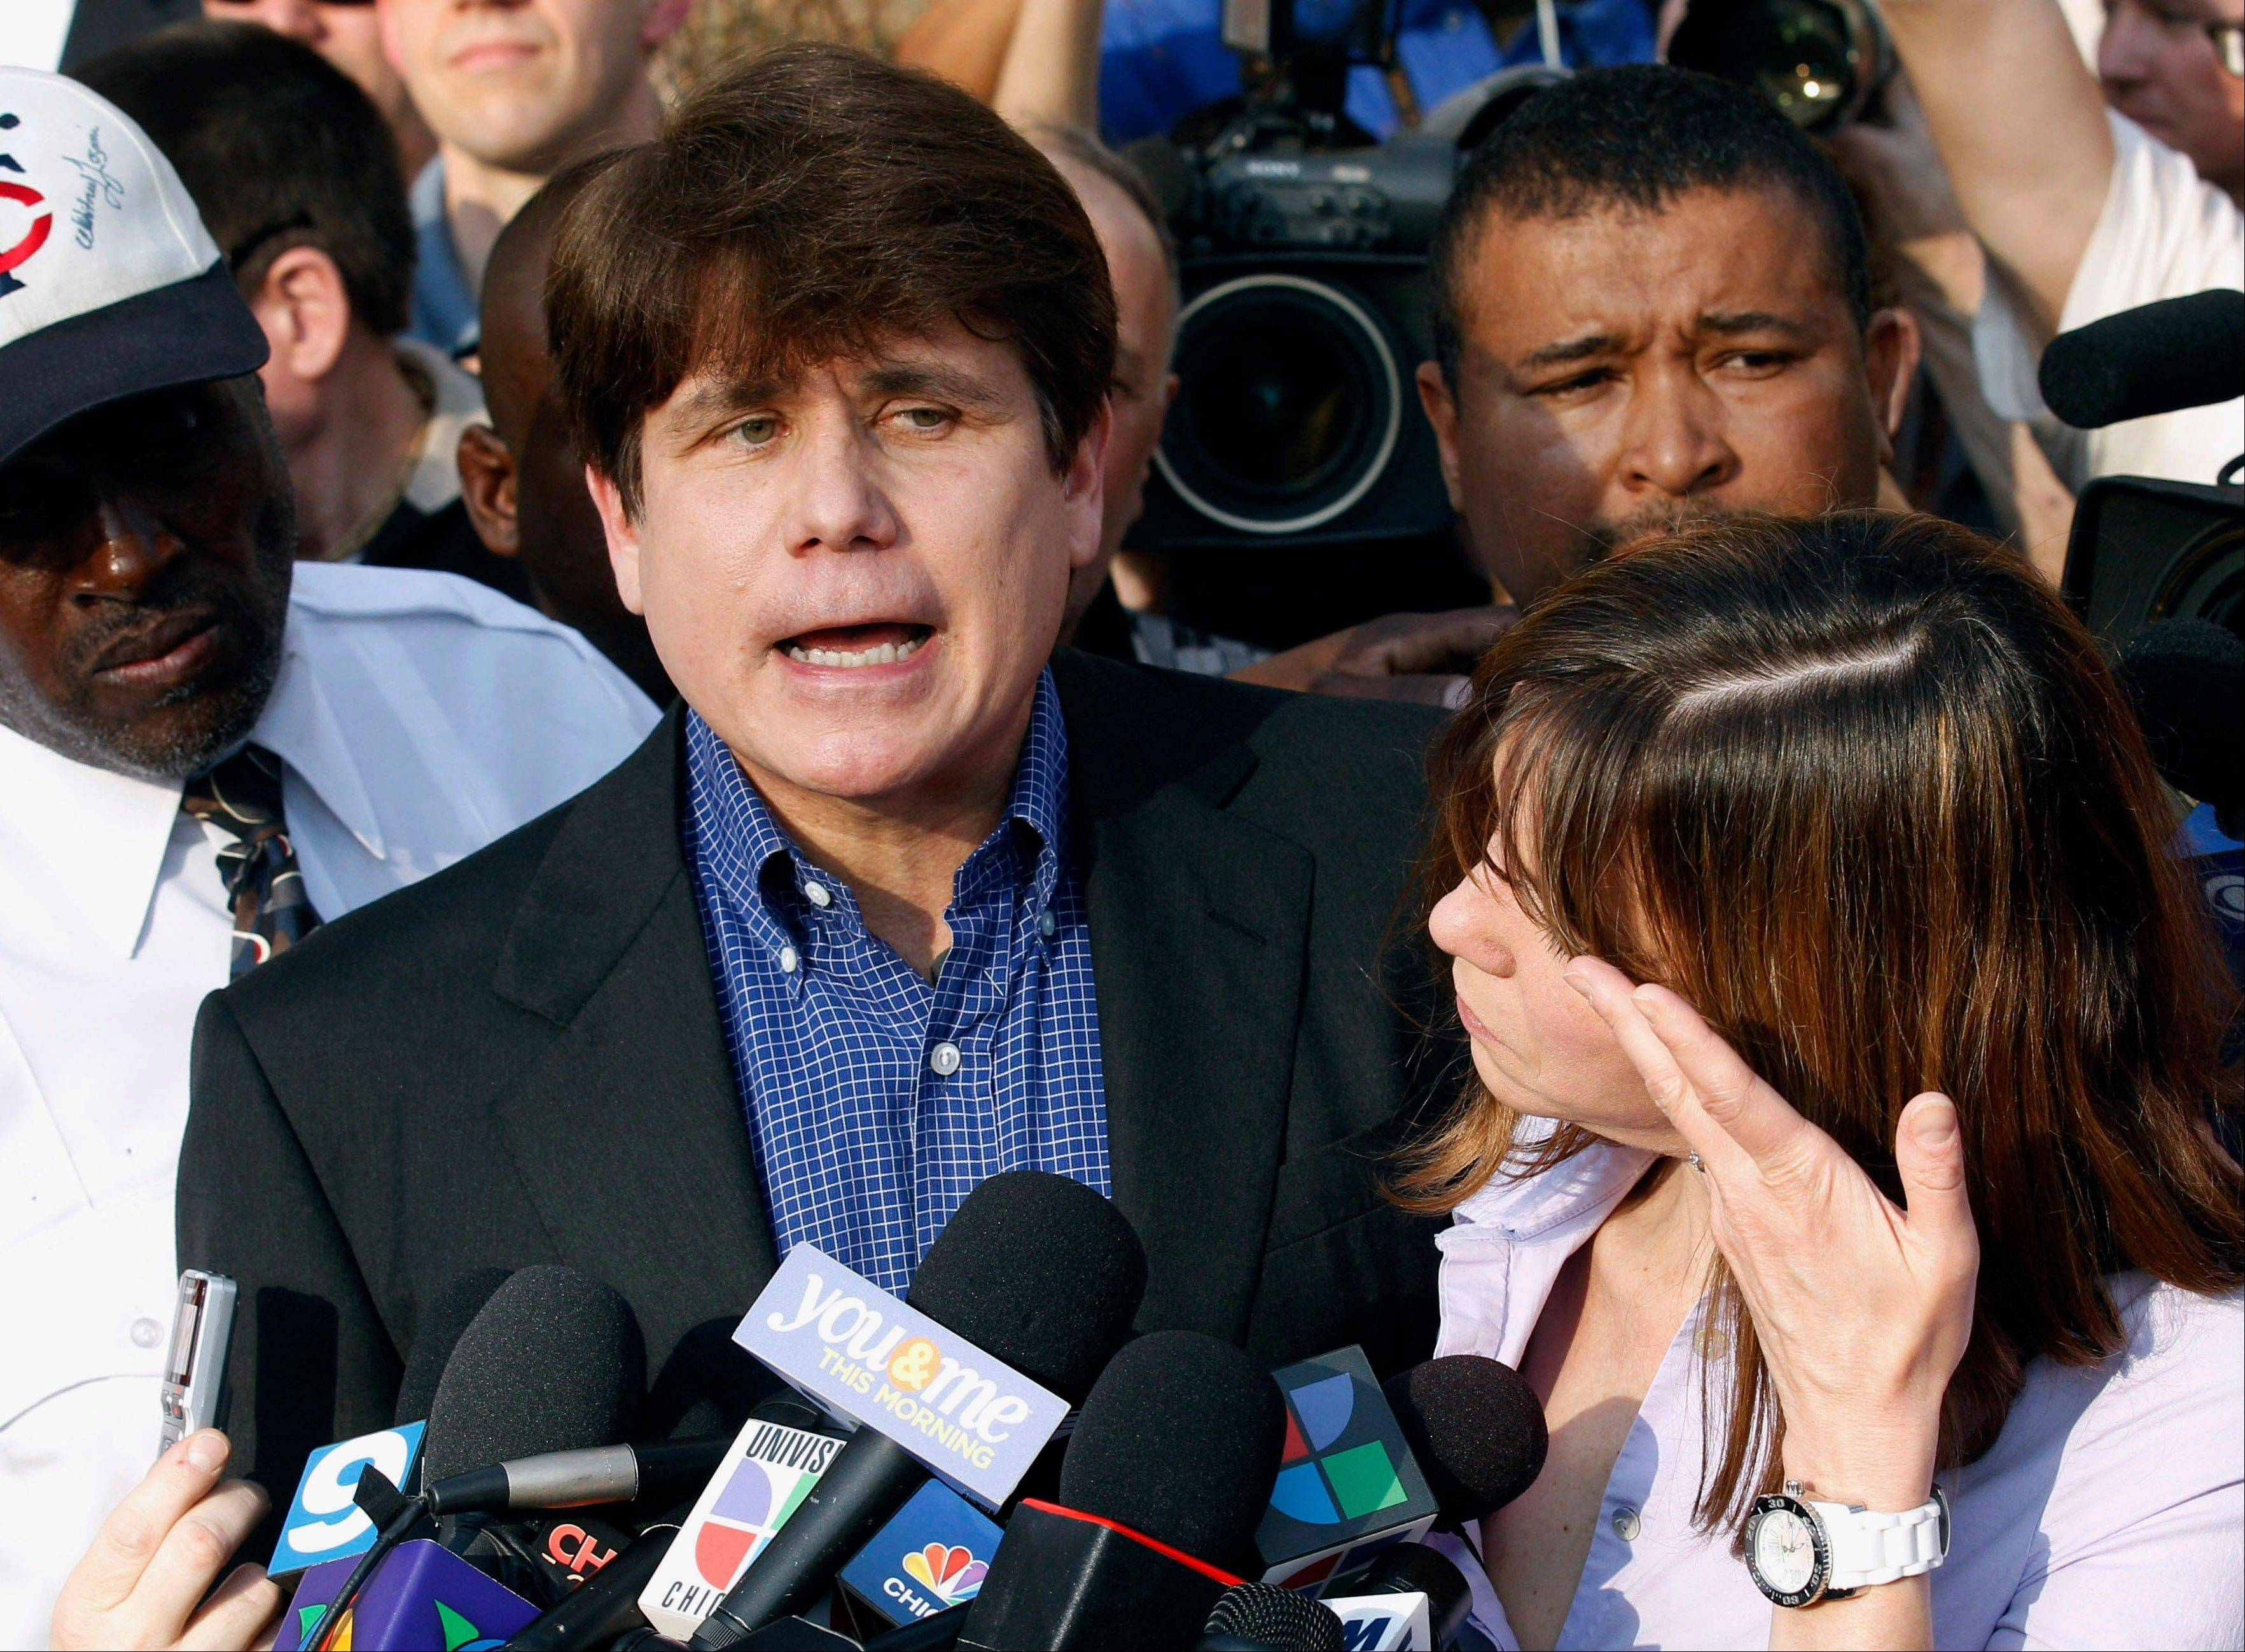 Former Gov. Rod Blagojevich speaks to the media outside his home in Chicago, as his wife, Patti, wipes away tears a day before he was to report to prison in Littleton, Colo.